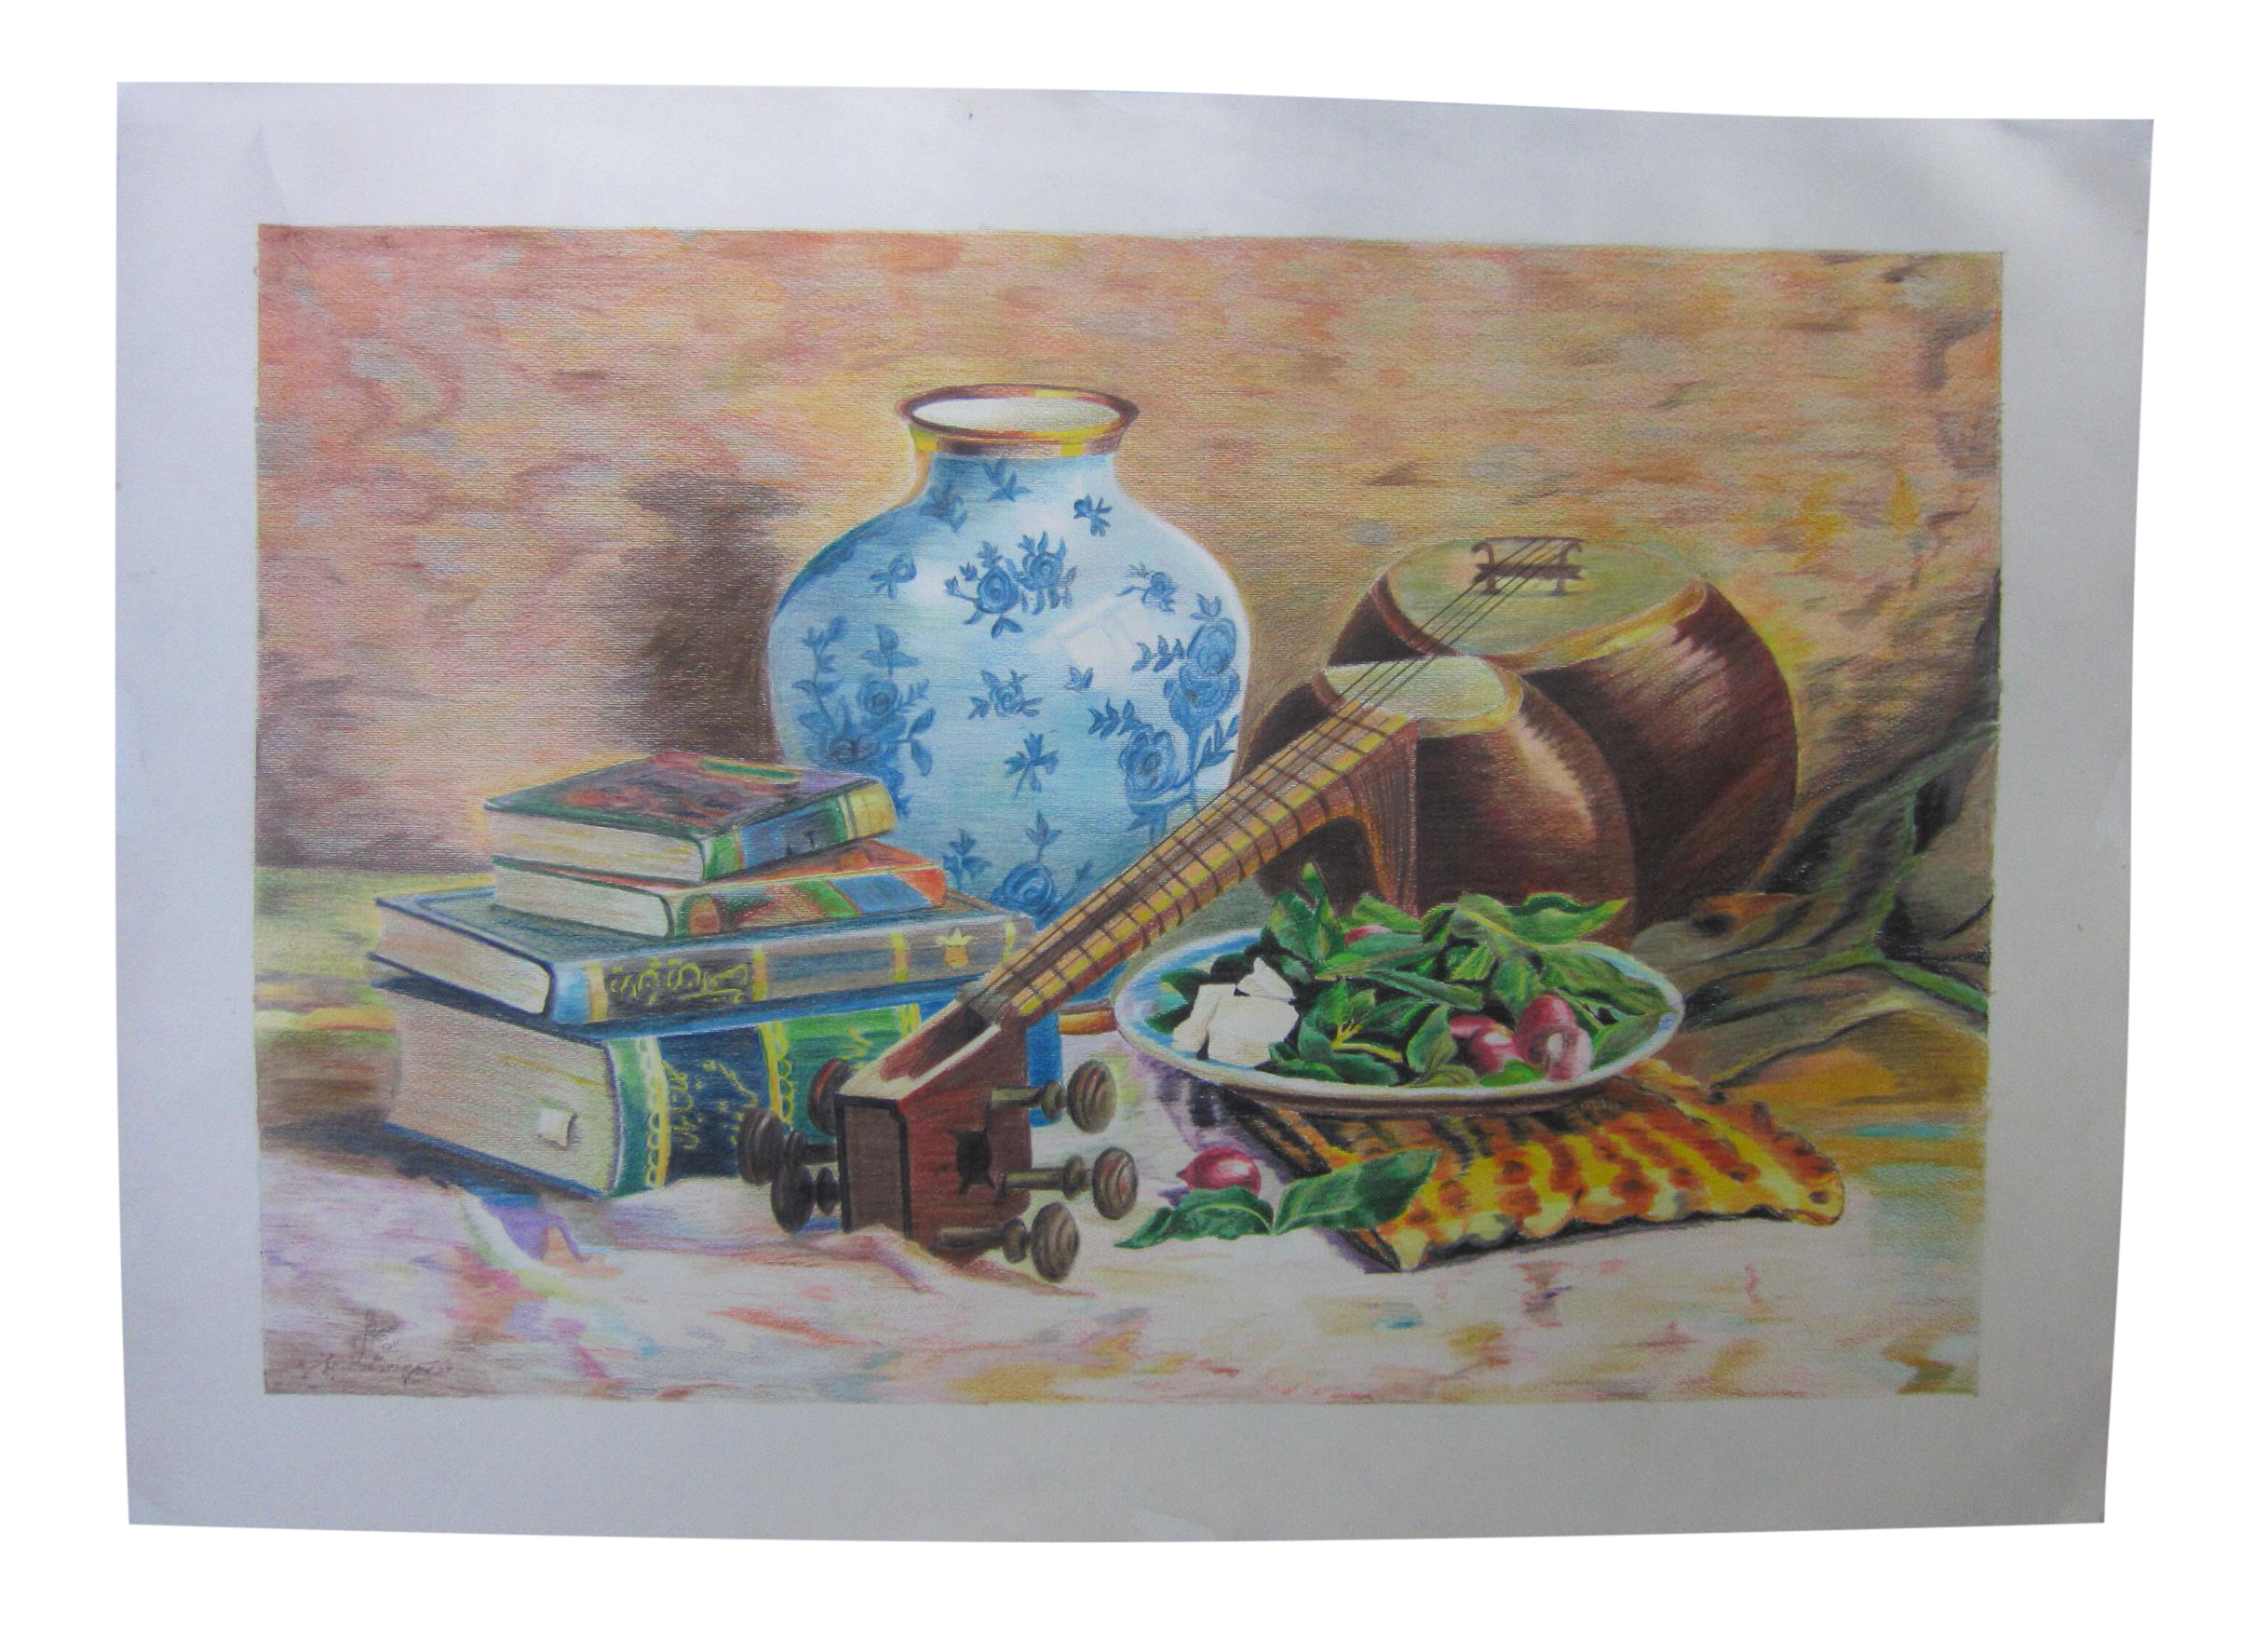 Surrealist drawing colored pencil. Eastern culture realism painting